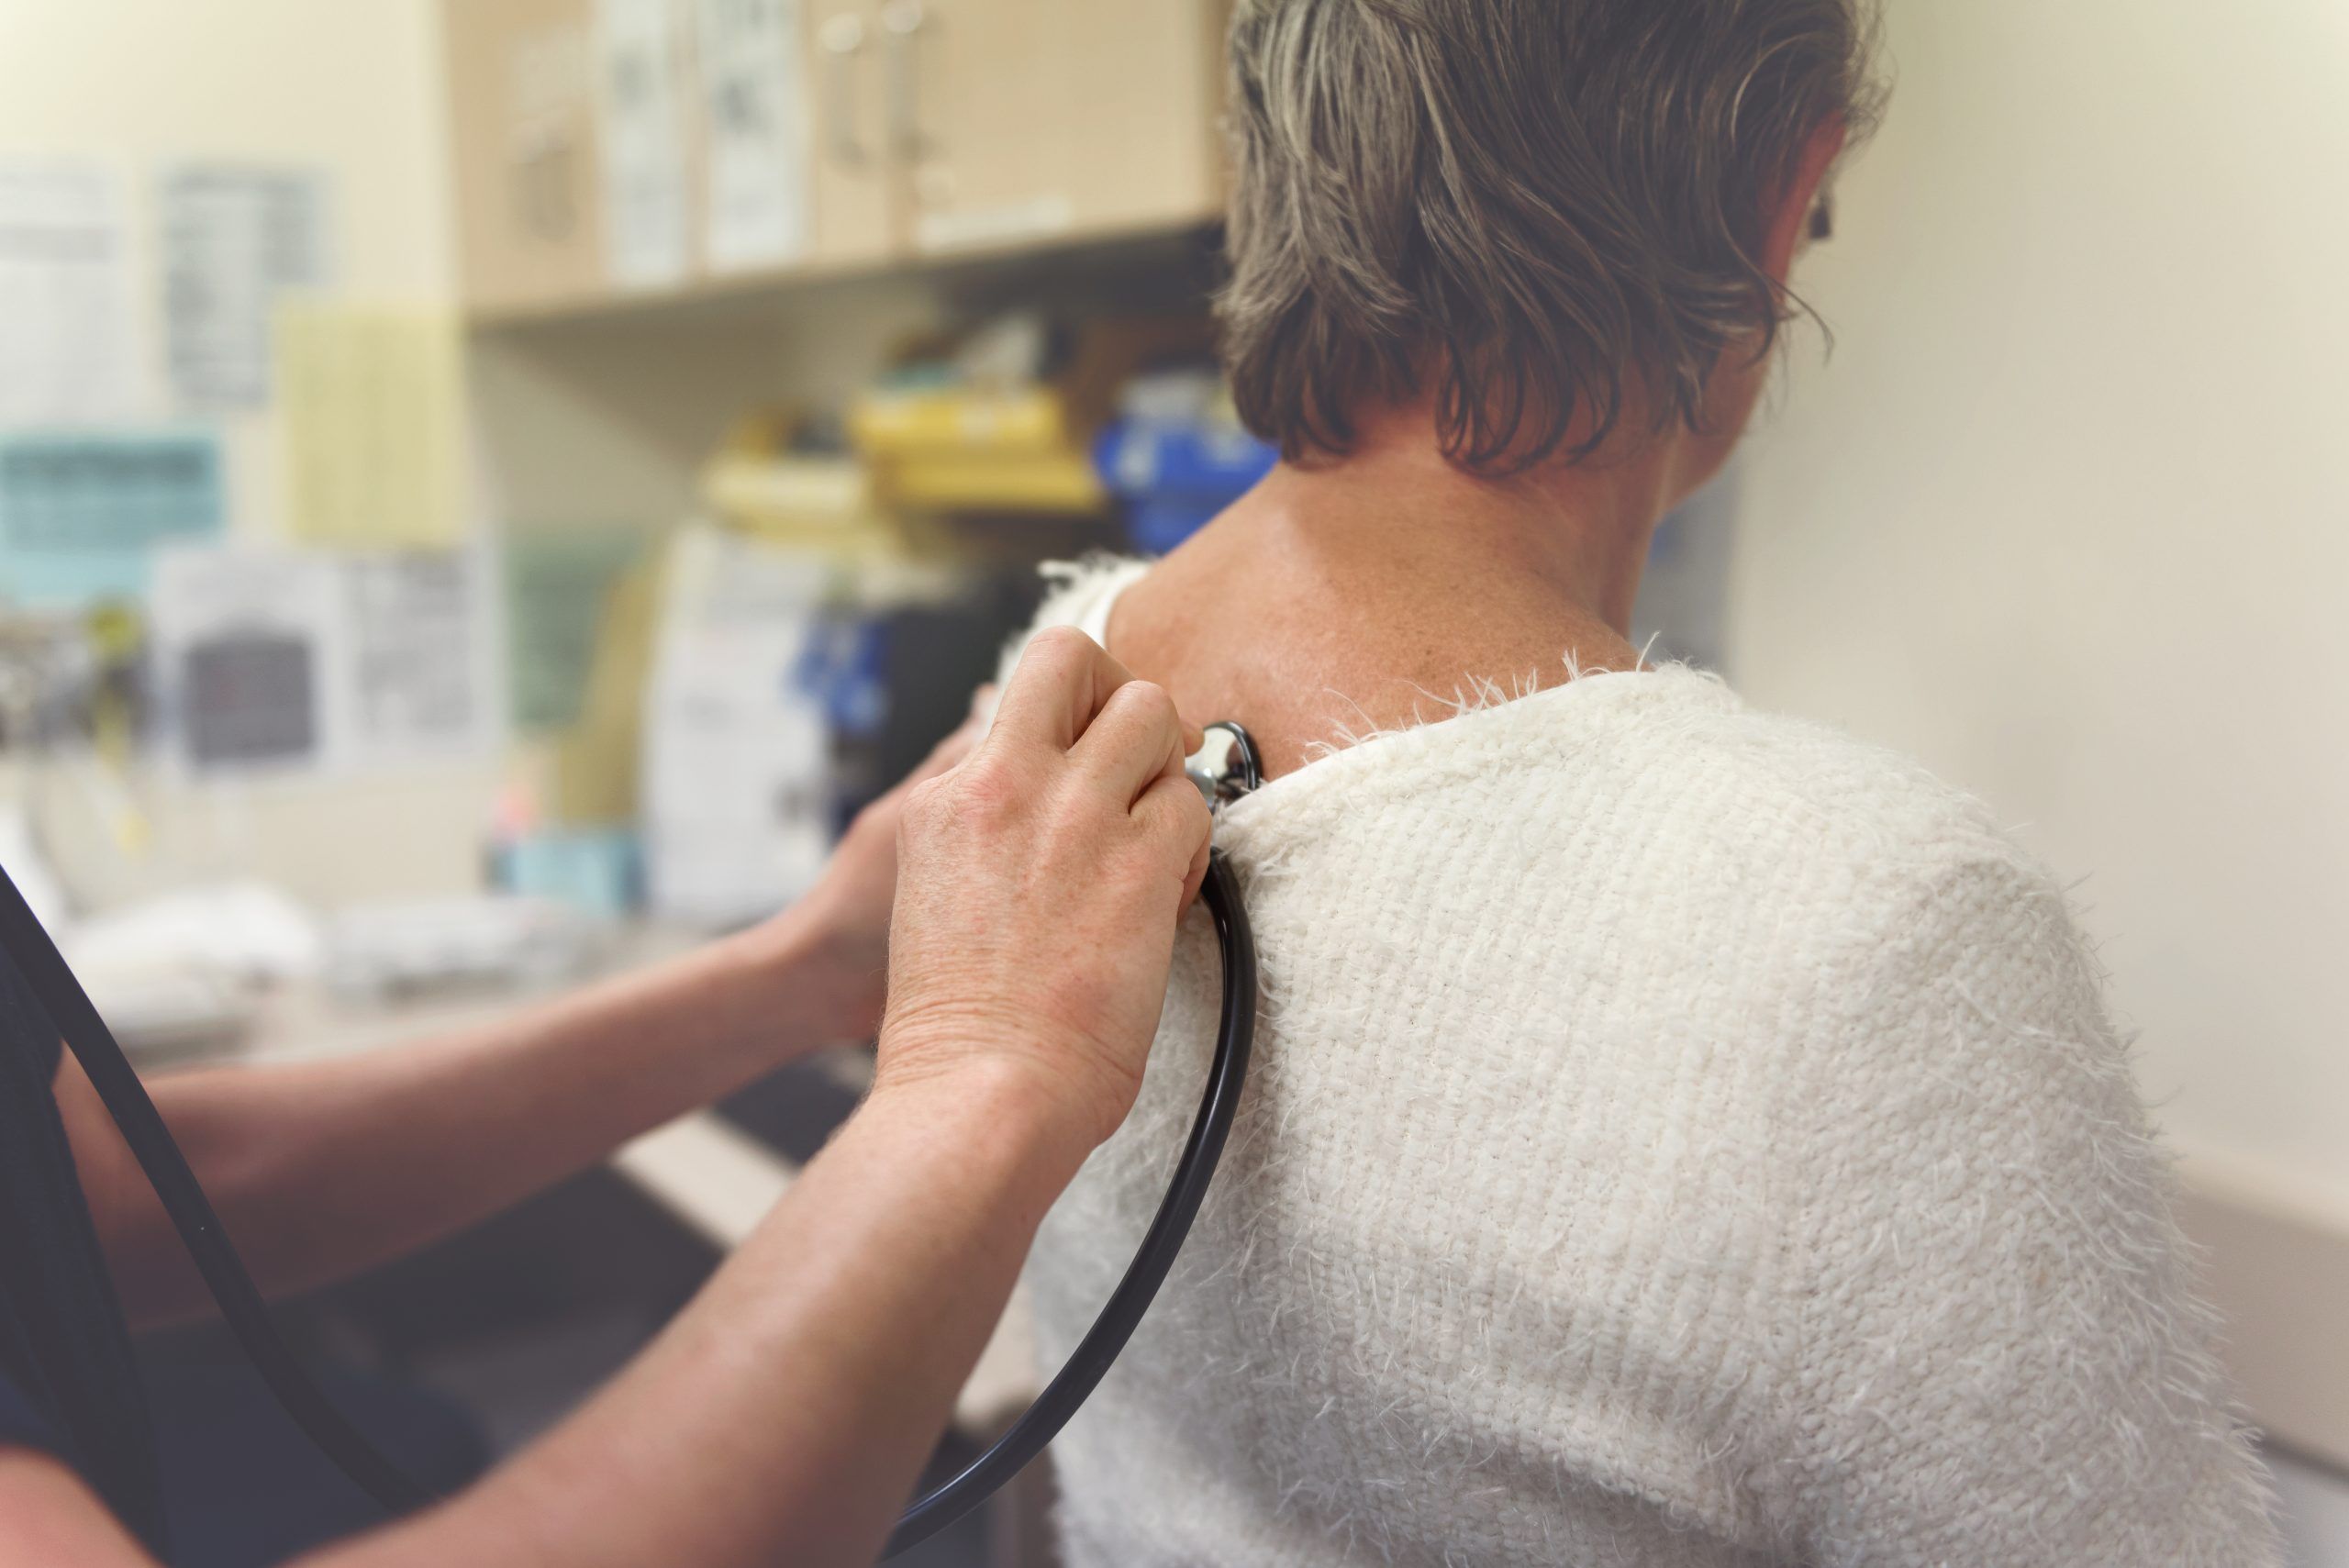 Medical professional using stethoscope on woman's back